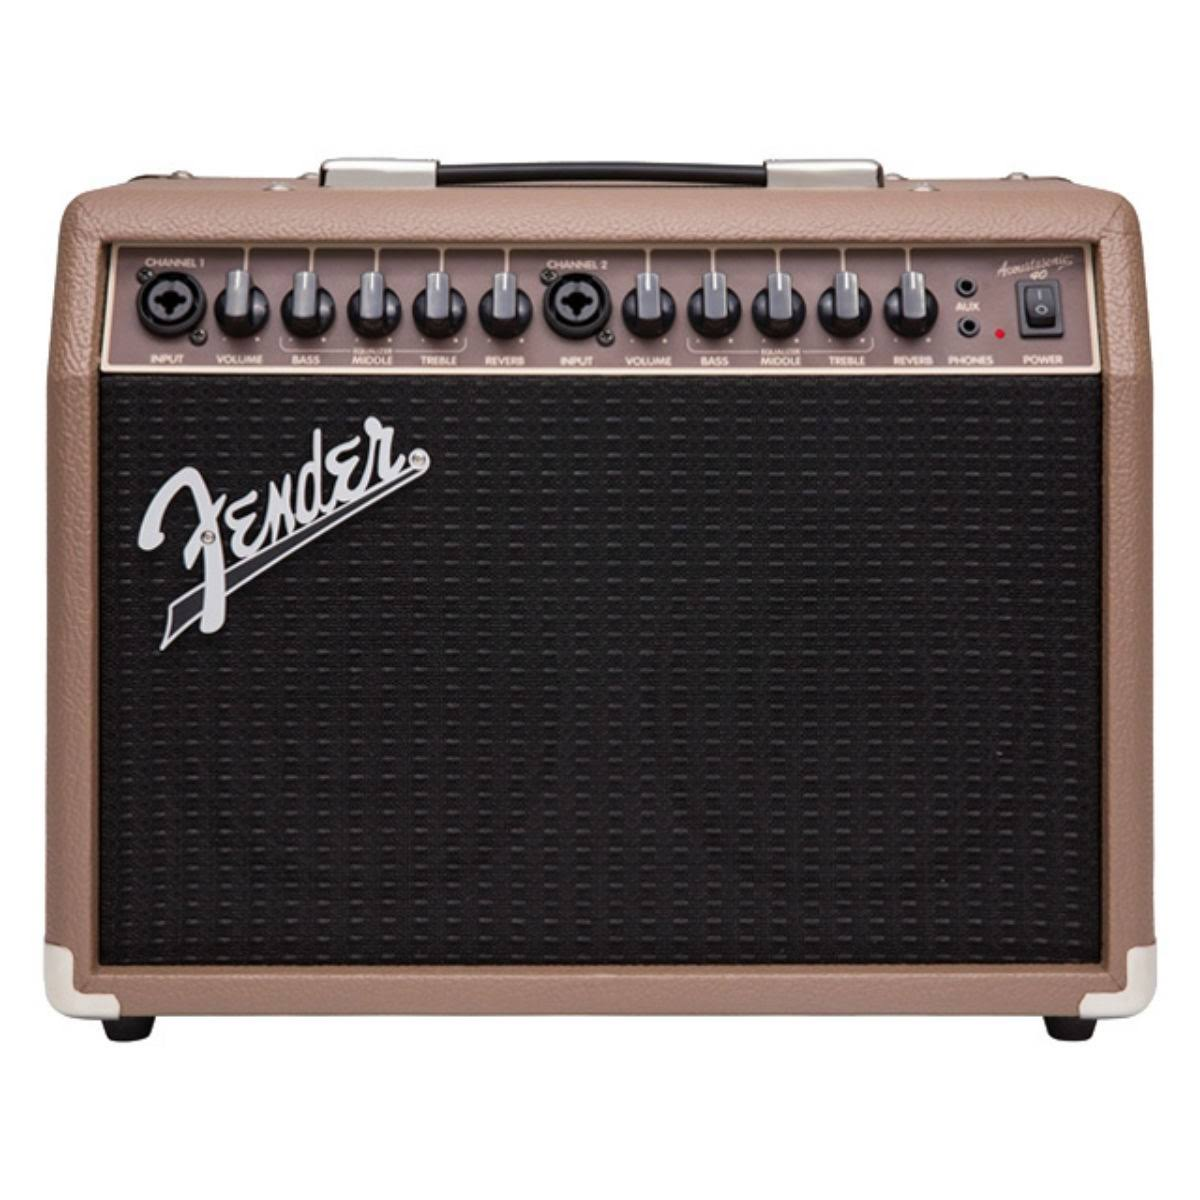 Fender Acoustasonic 40 Combo Acoustic Guitar Amplifier - 40W